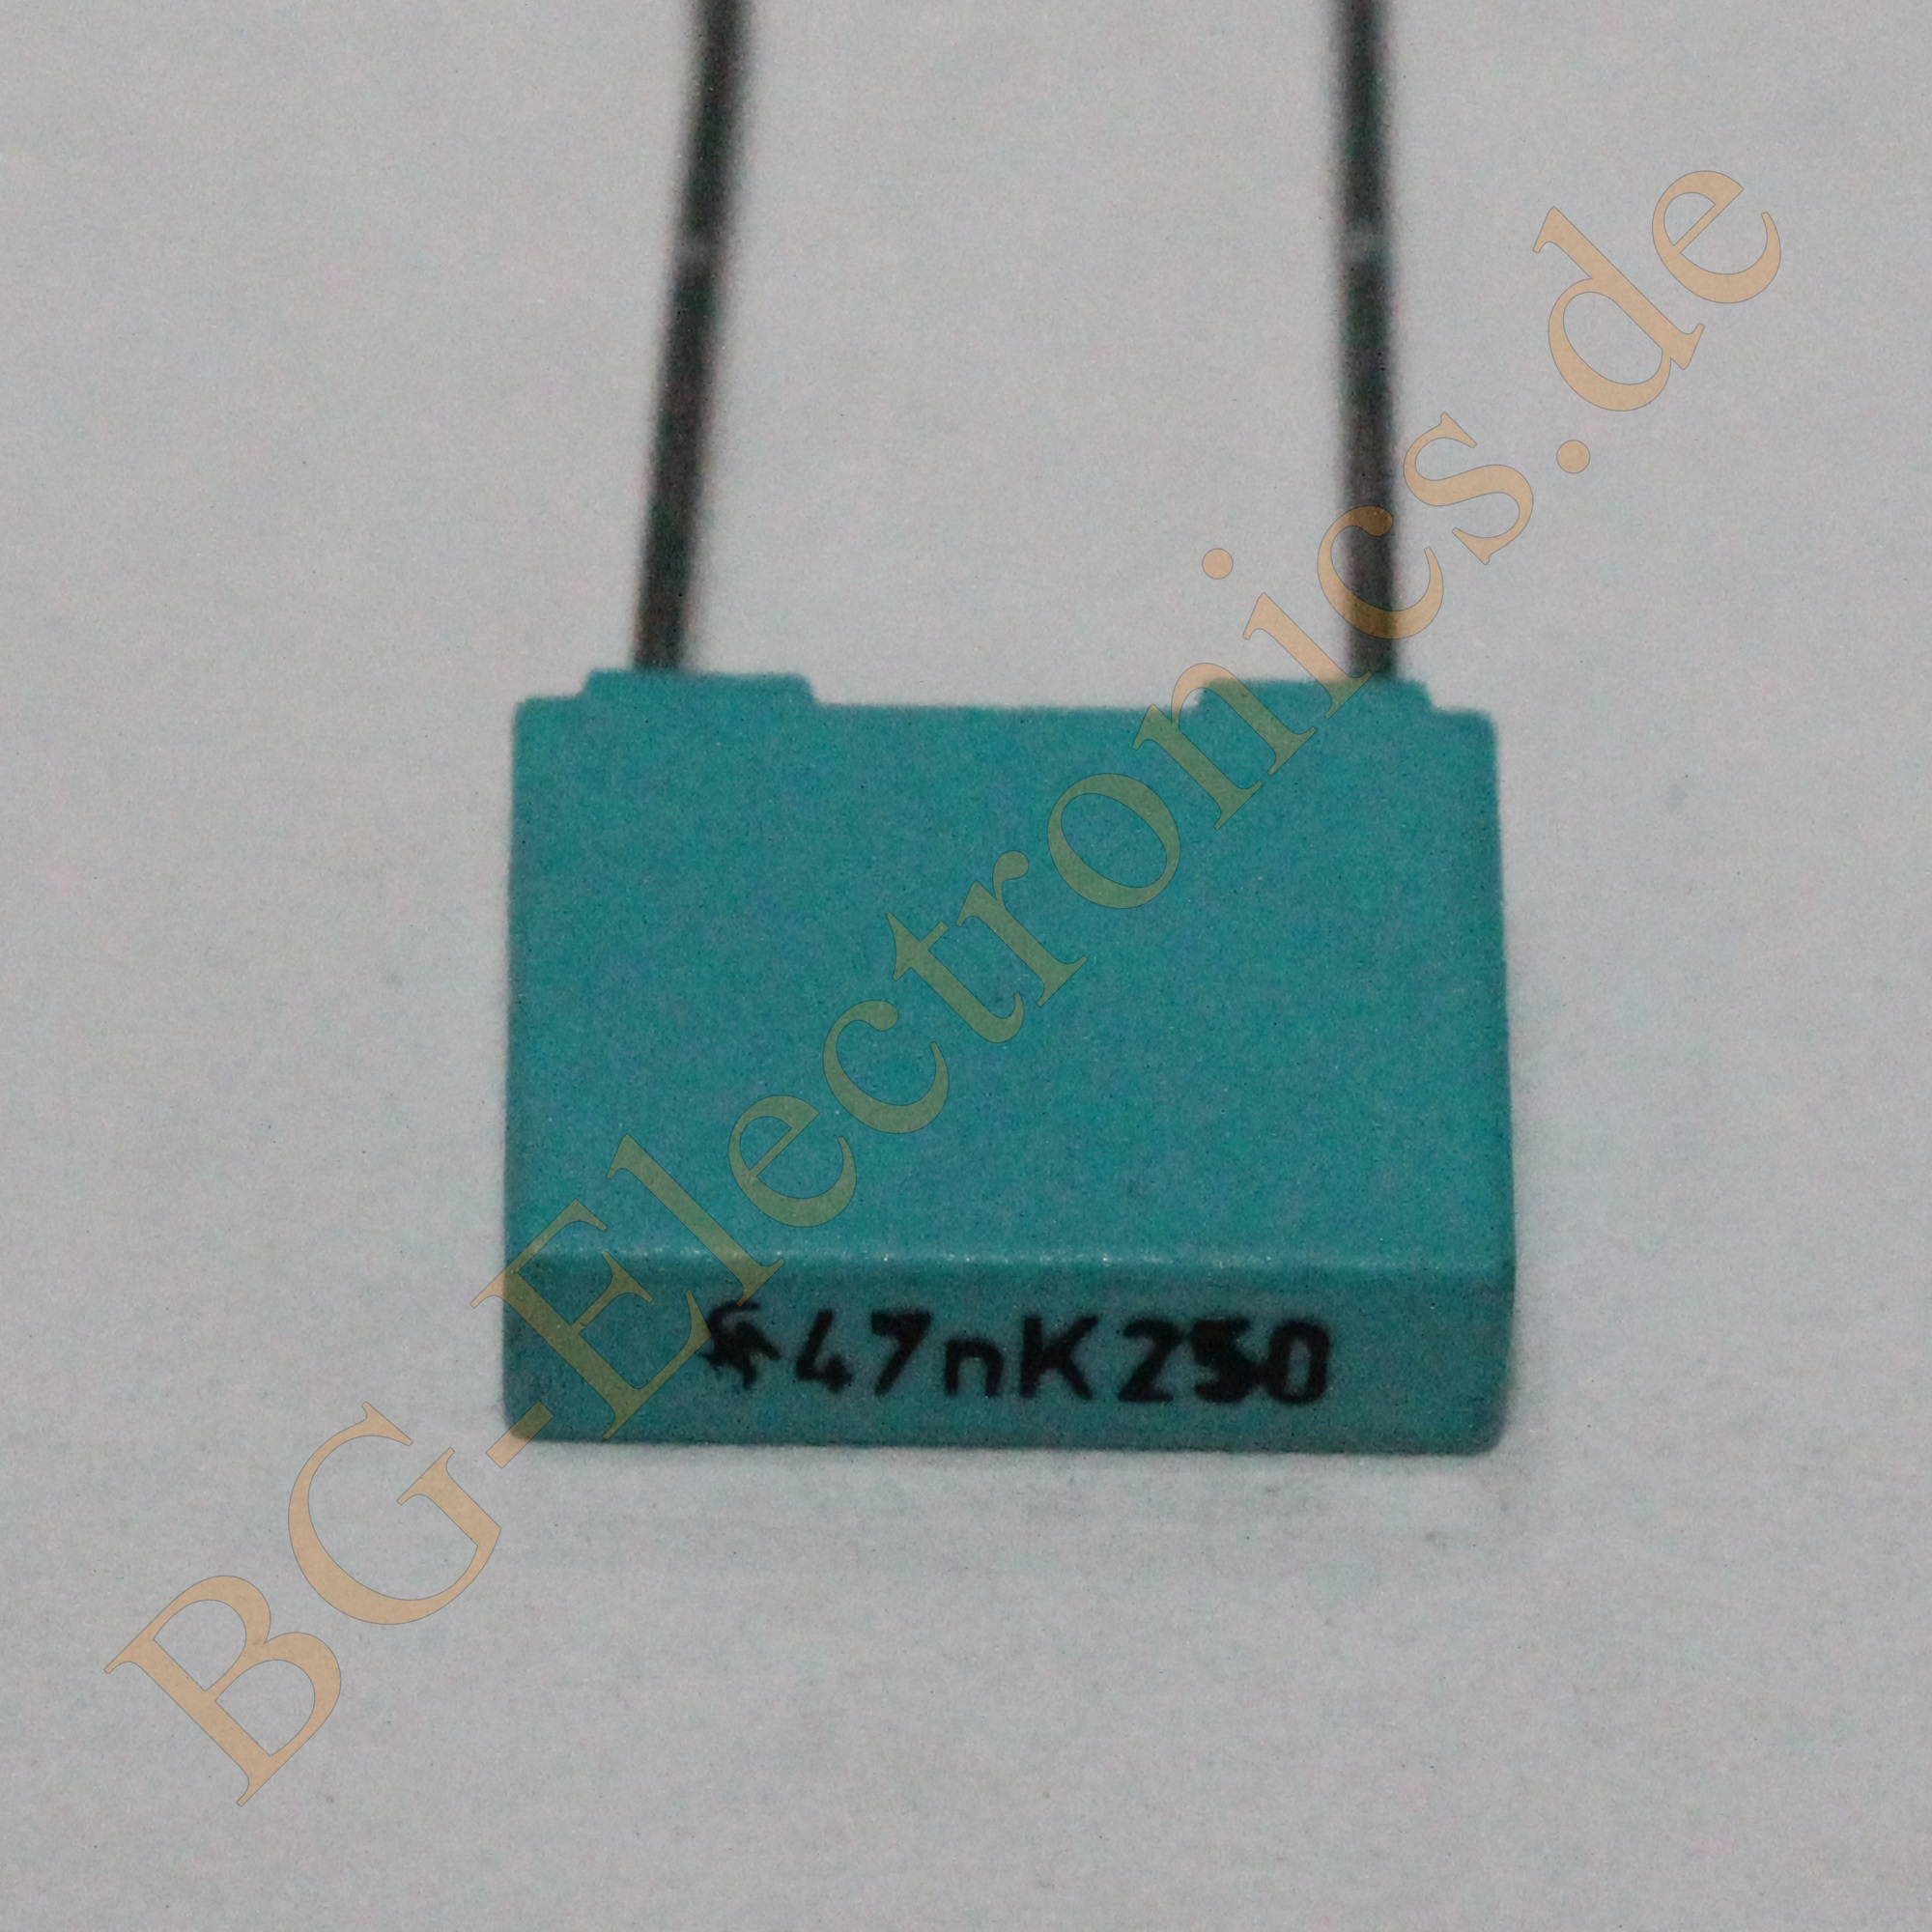 FO-R 47nF / 250V / RM7.5